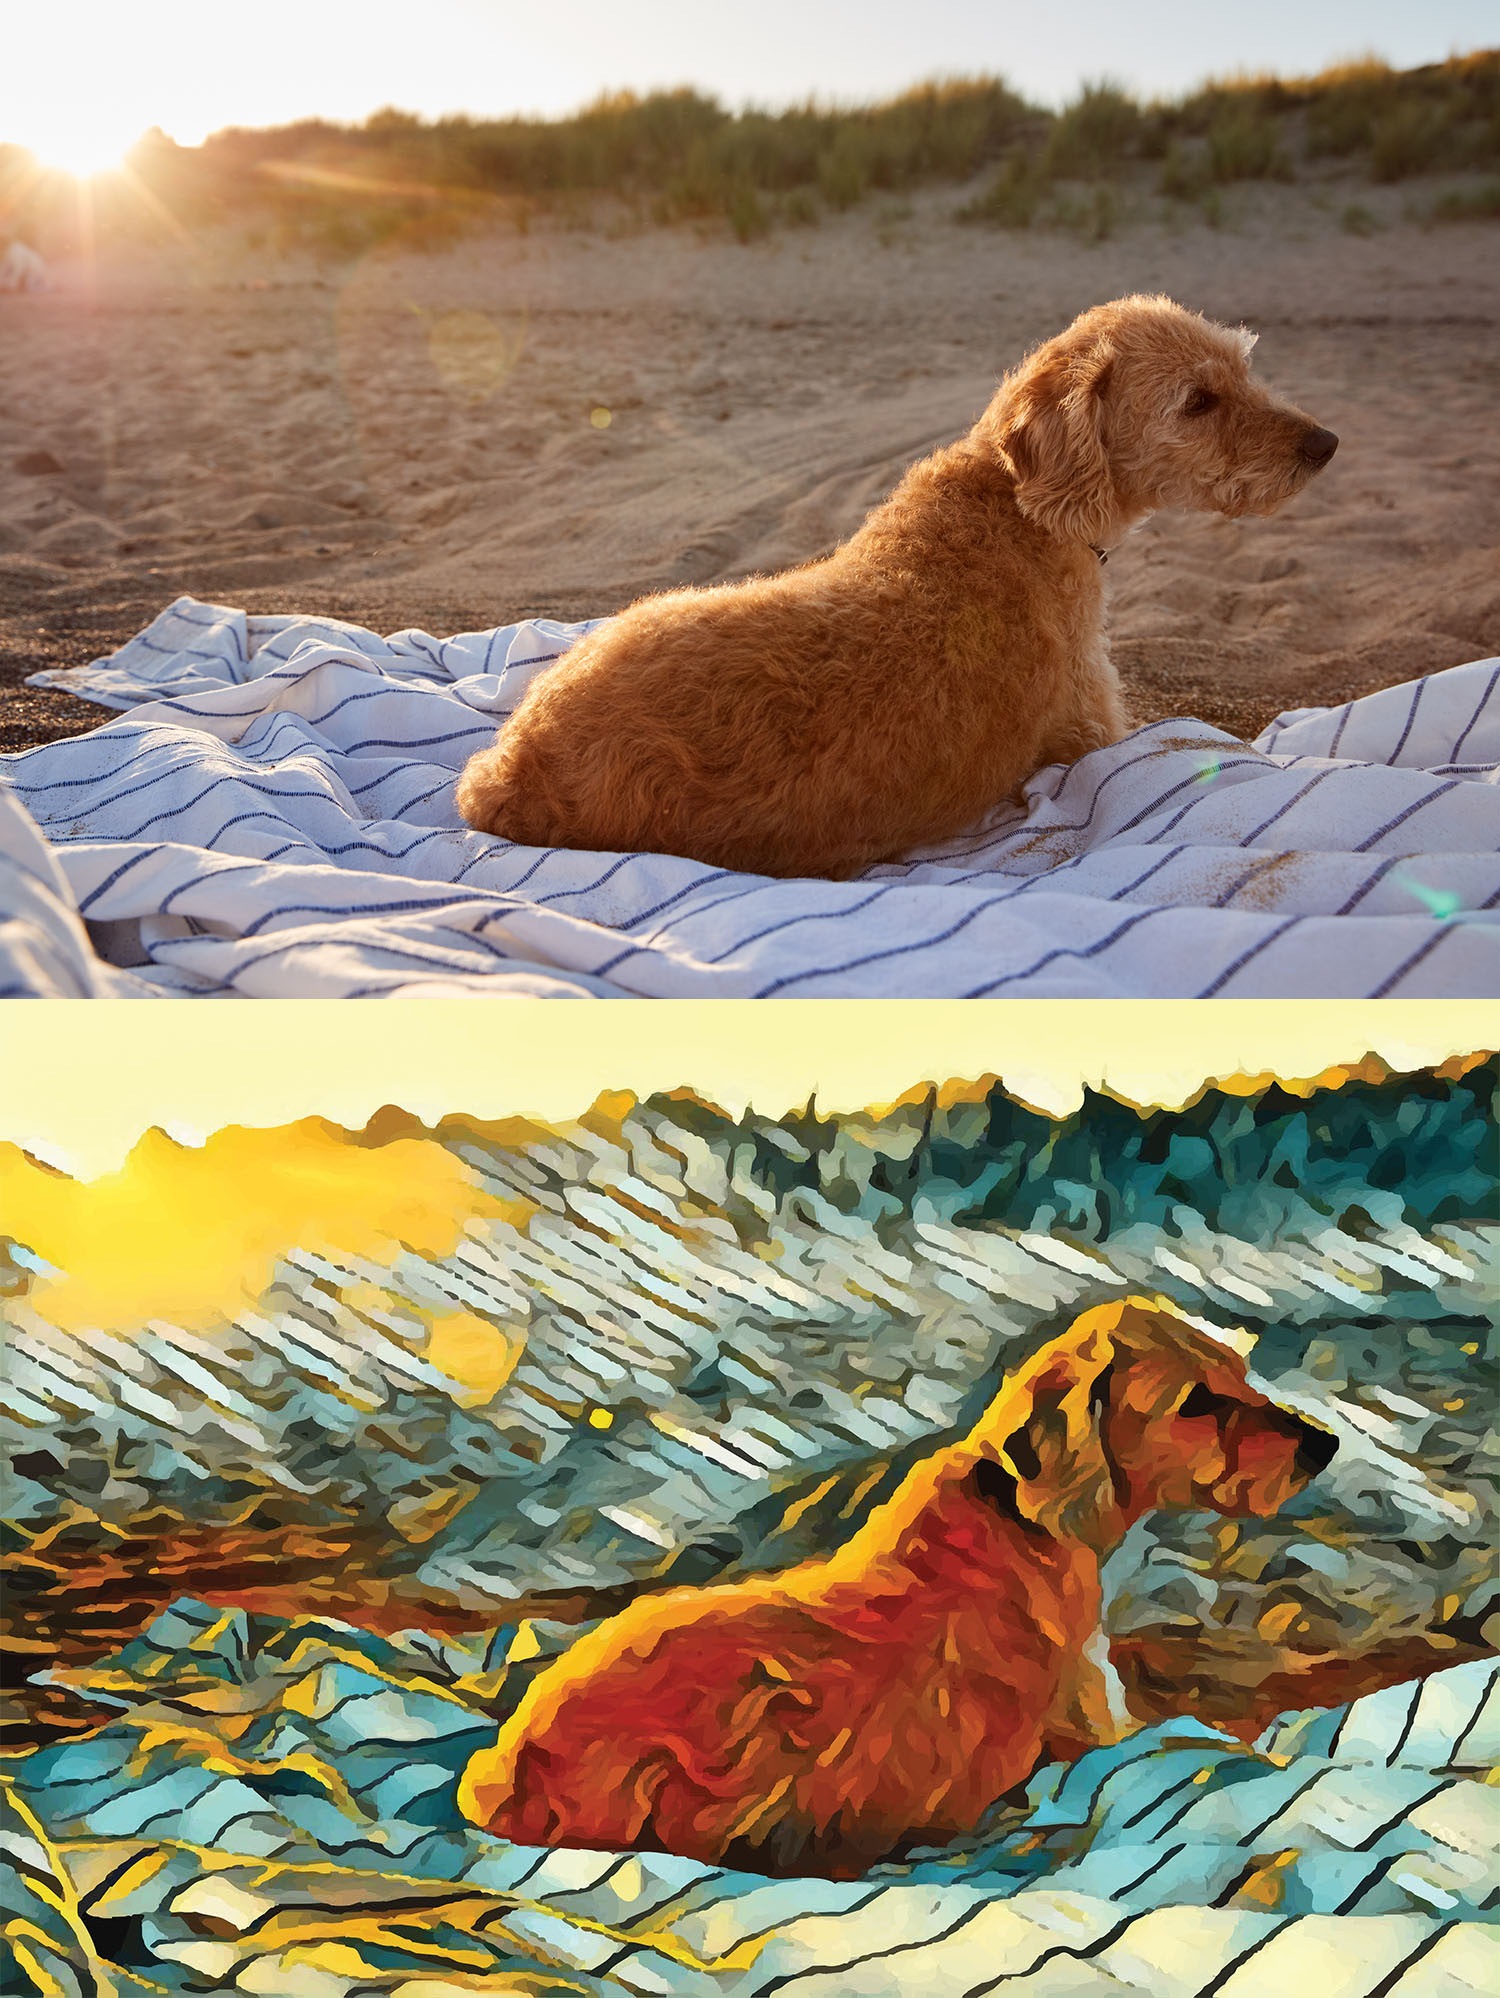 Before and after stylized image of a dog on a blanket on a beach